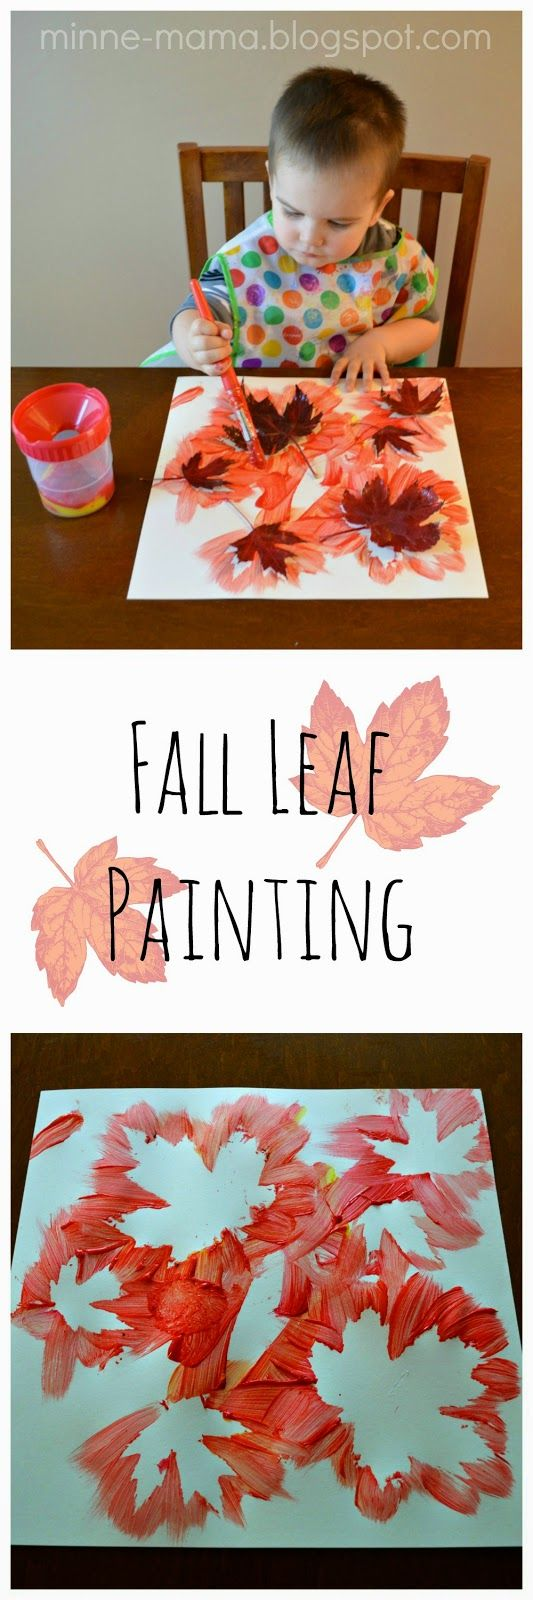 Fall Leaf Painting.